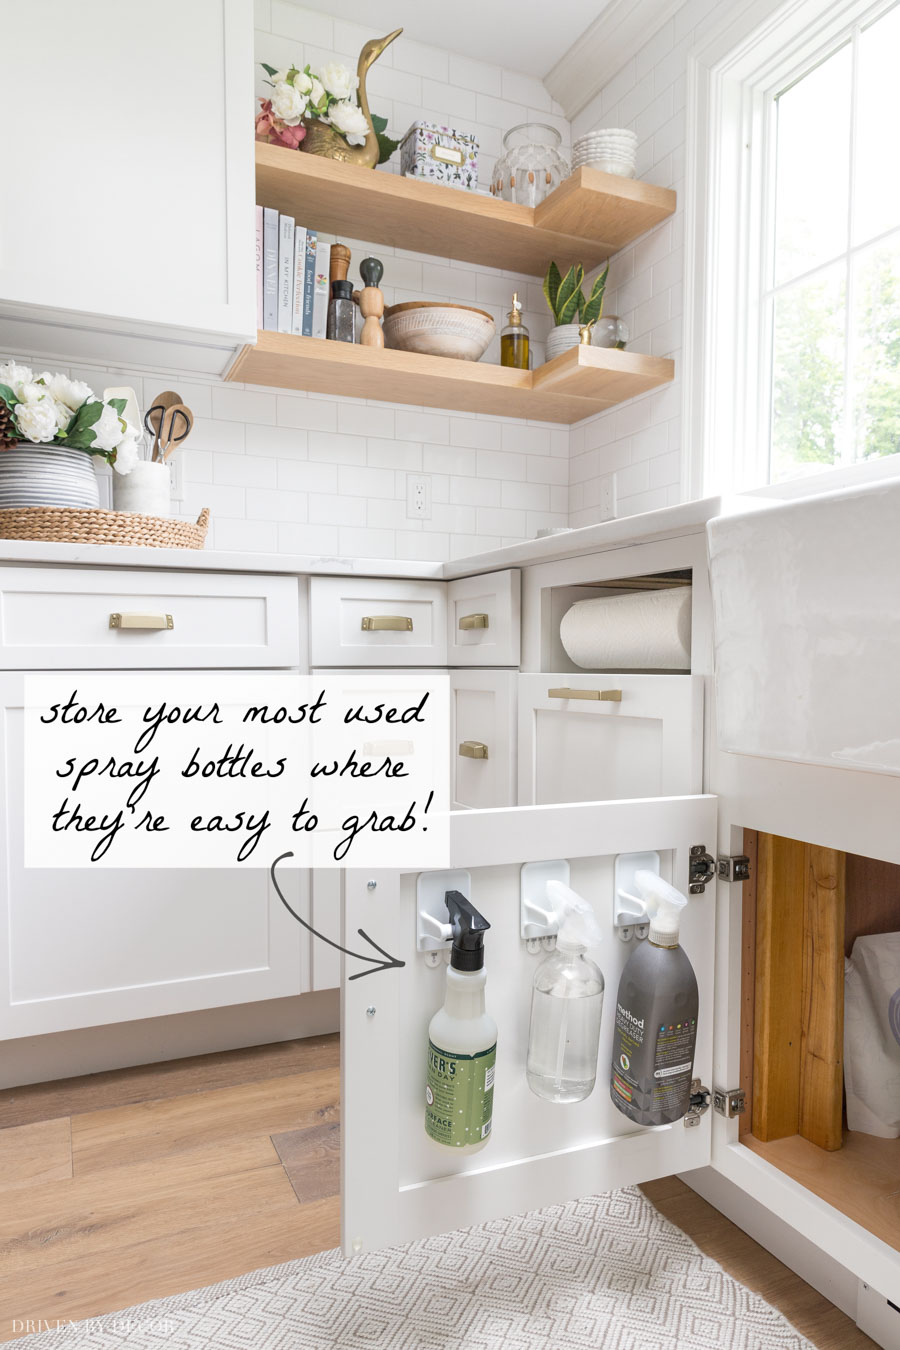 LOVE this idea for keeping spray bottles off the counter but easy to grab!